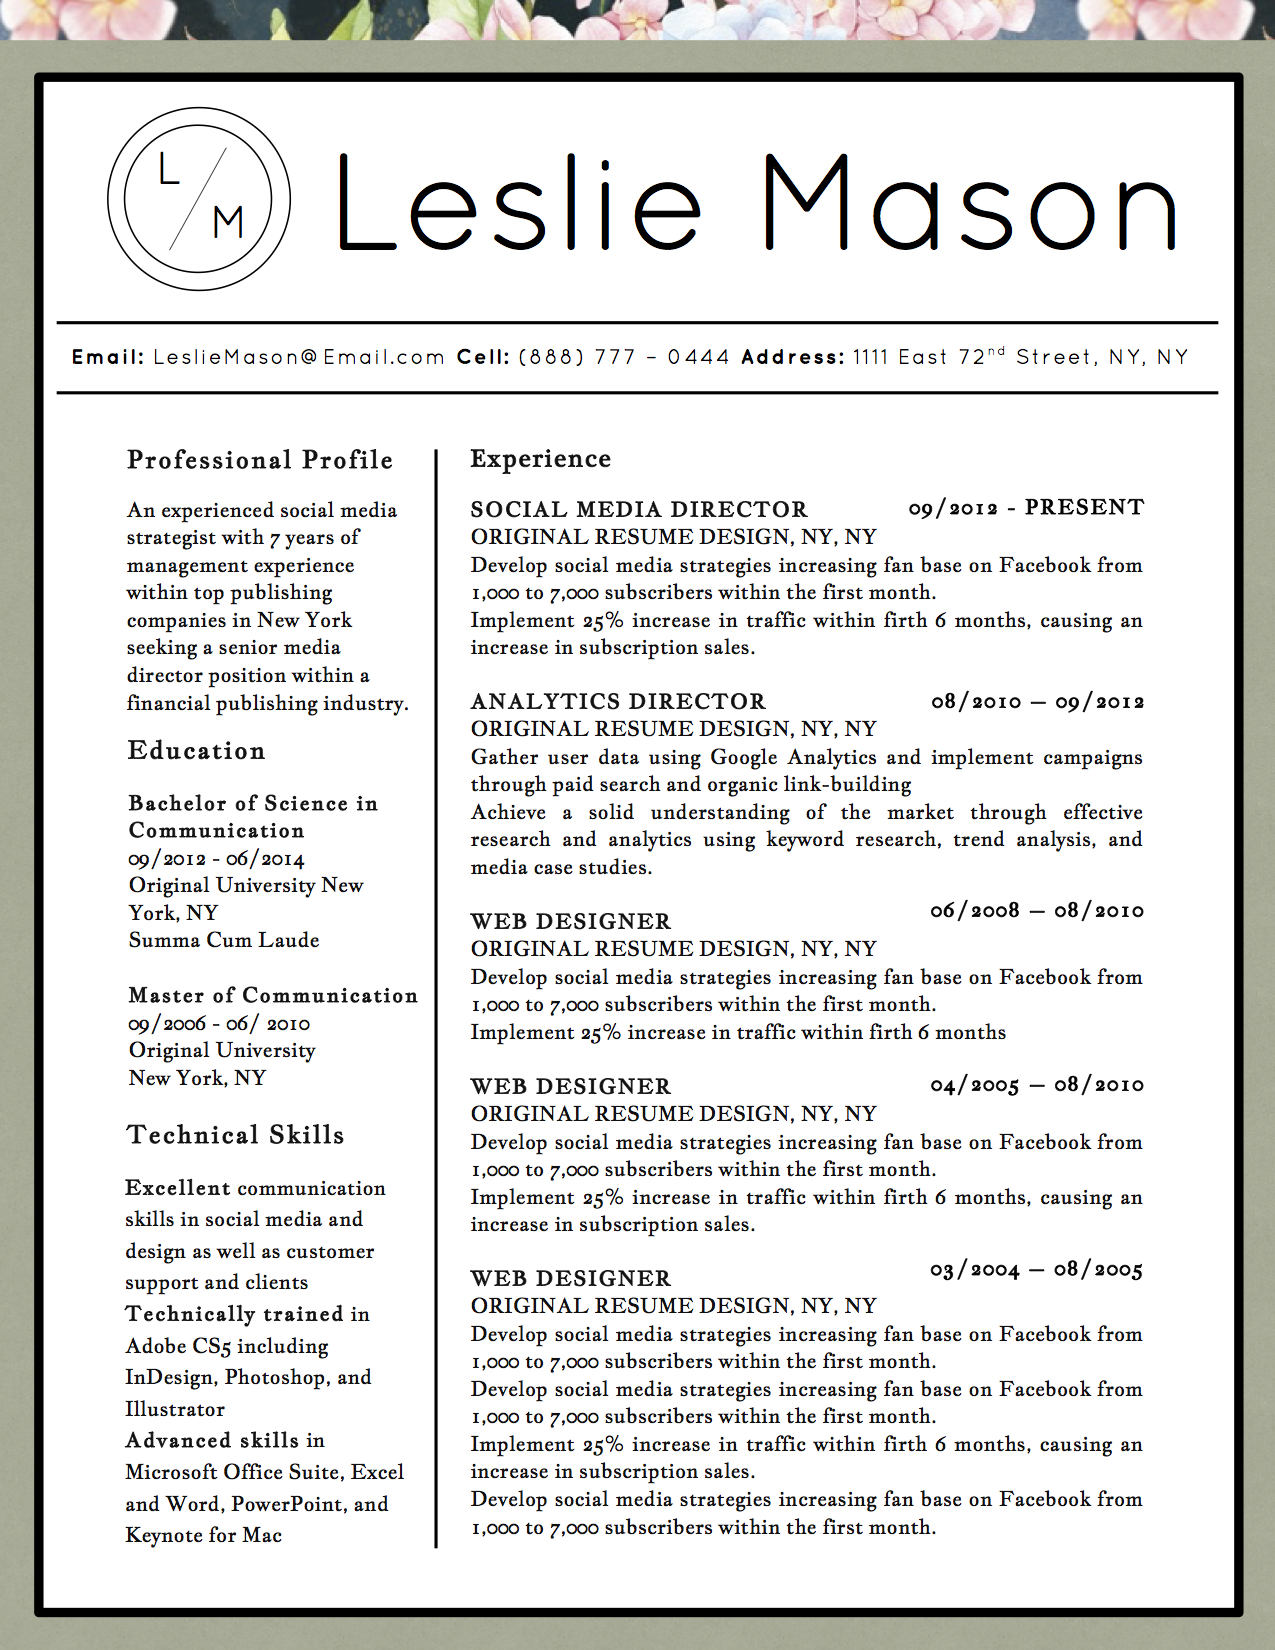 leslie mason beautiful resume 5 pack